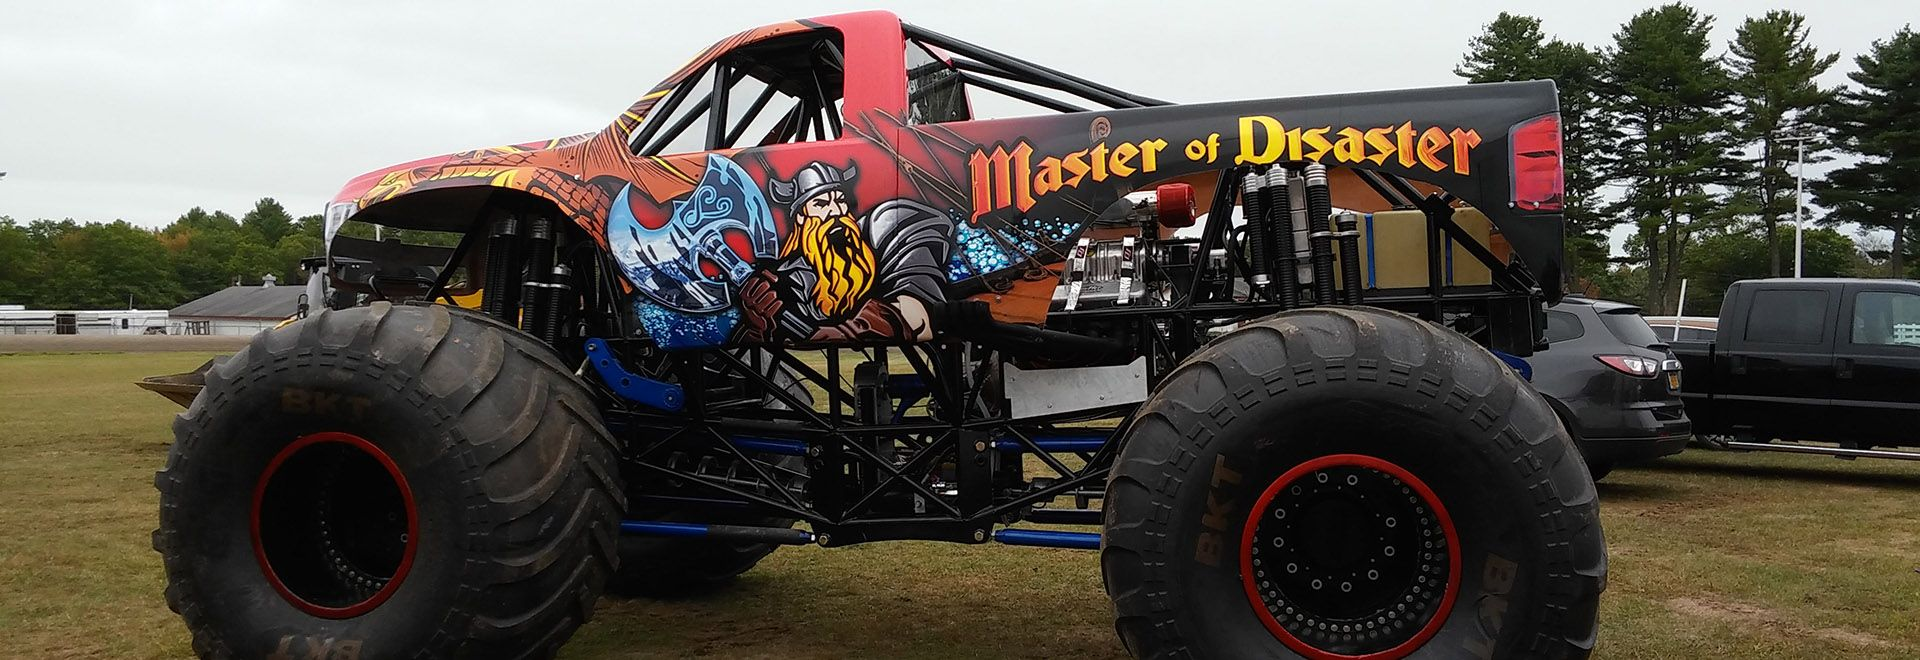 Master Of Disaster A Reality Monster Trucks Disasters Trucks